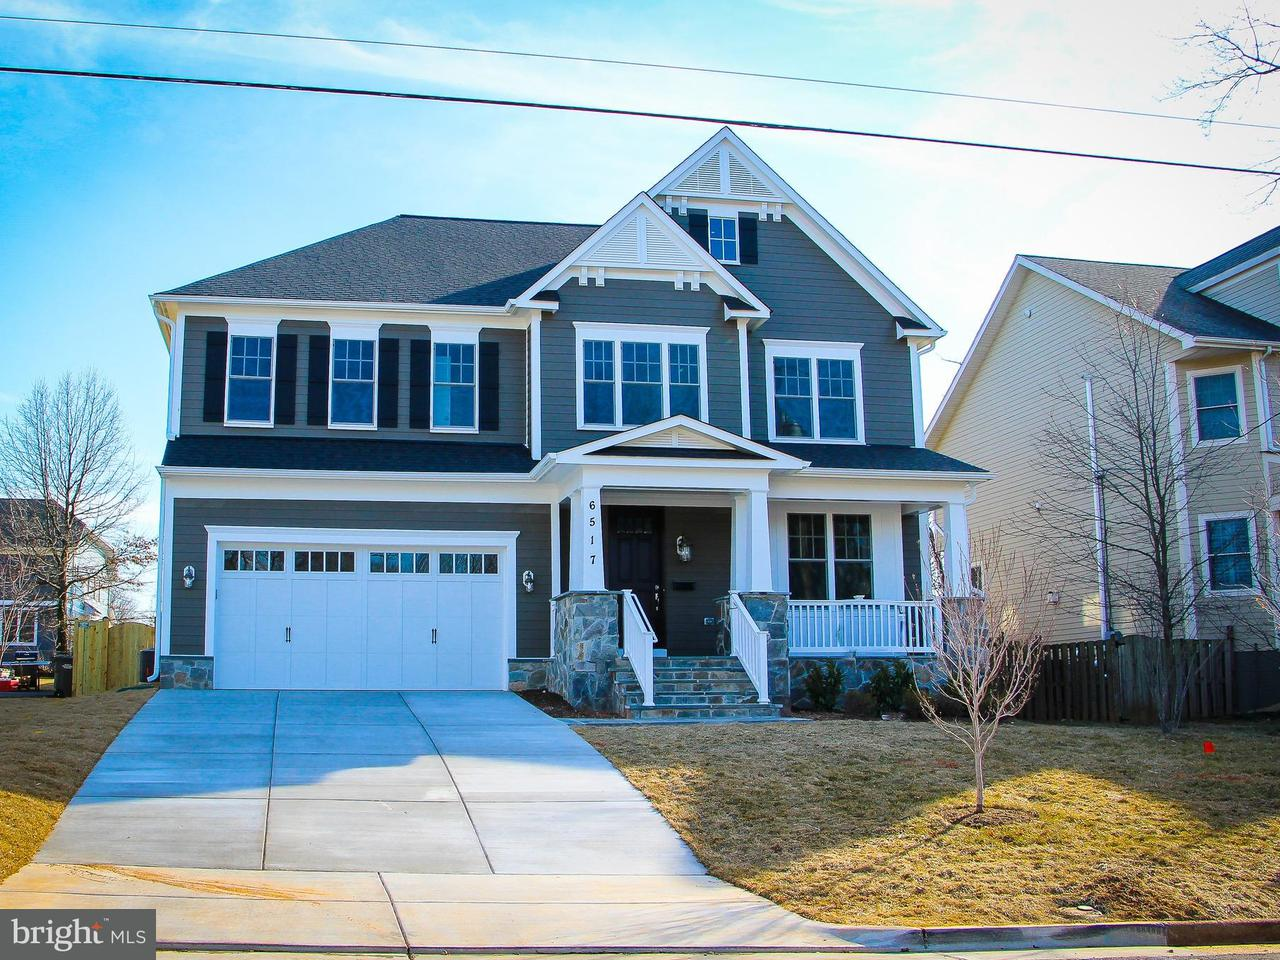 Single Family Home for Sale at 6517 Elmhirst Drive 6517 Elmhirst Drive Falls Church, Virginia 22043 United States